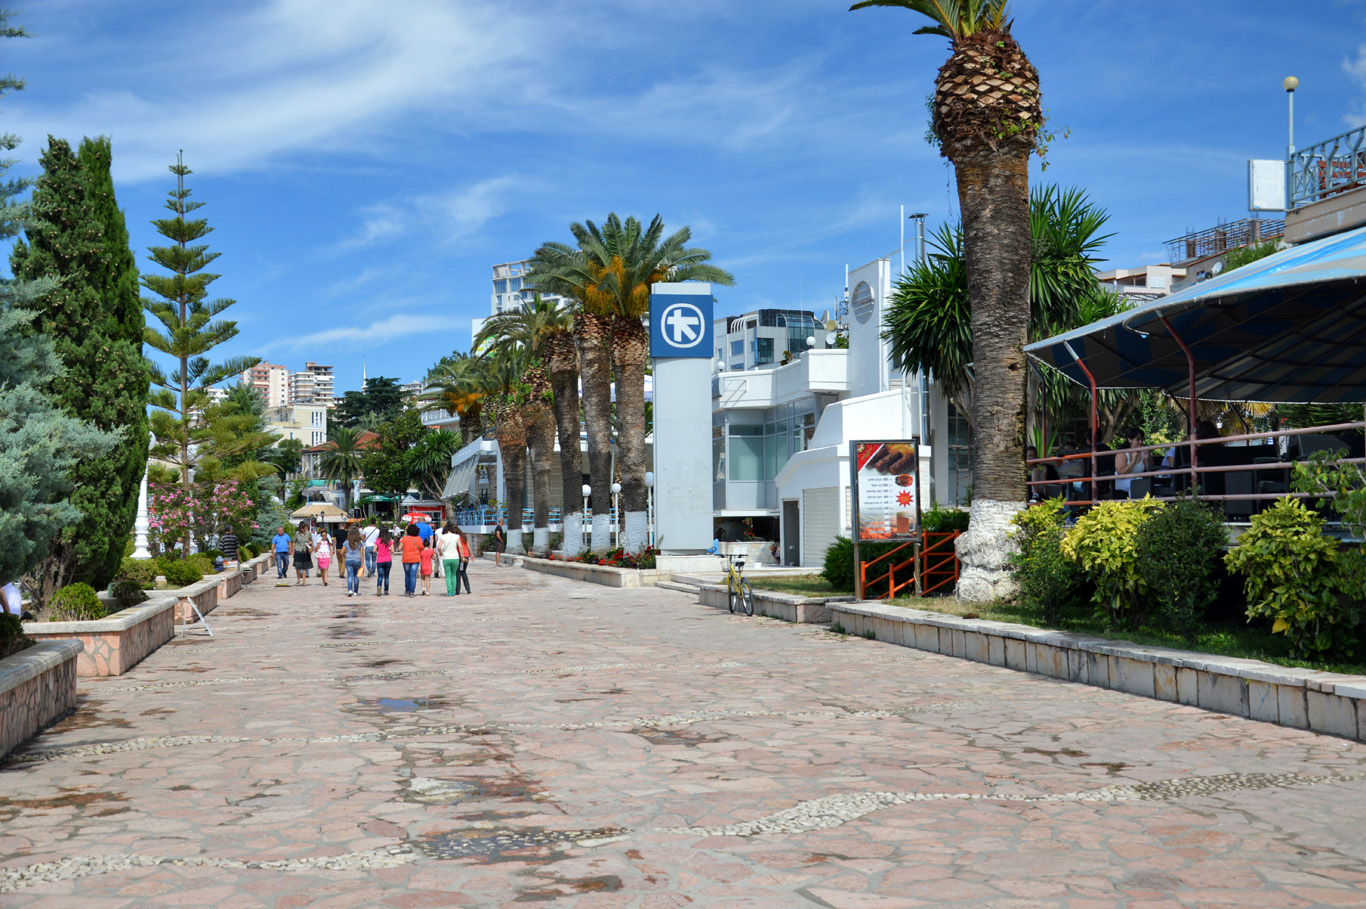 The promenade in Sarande